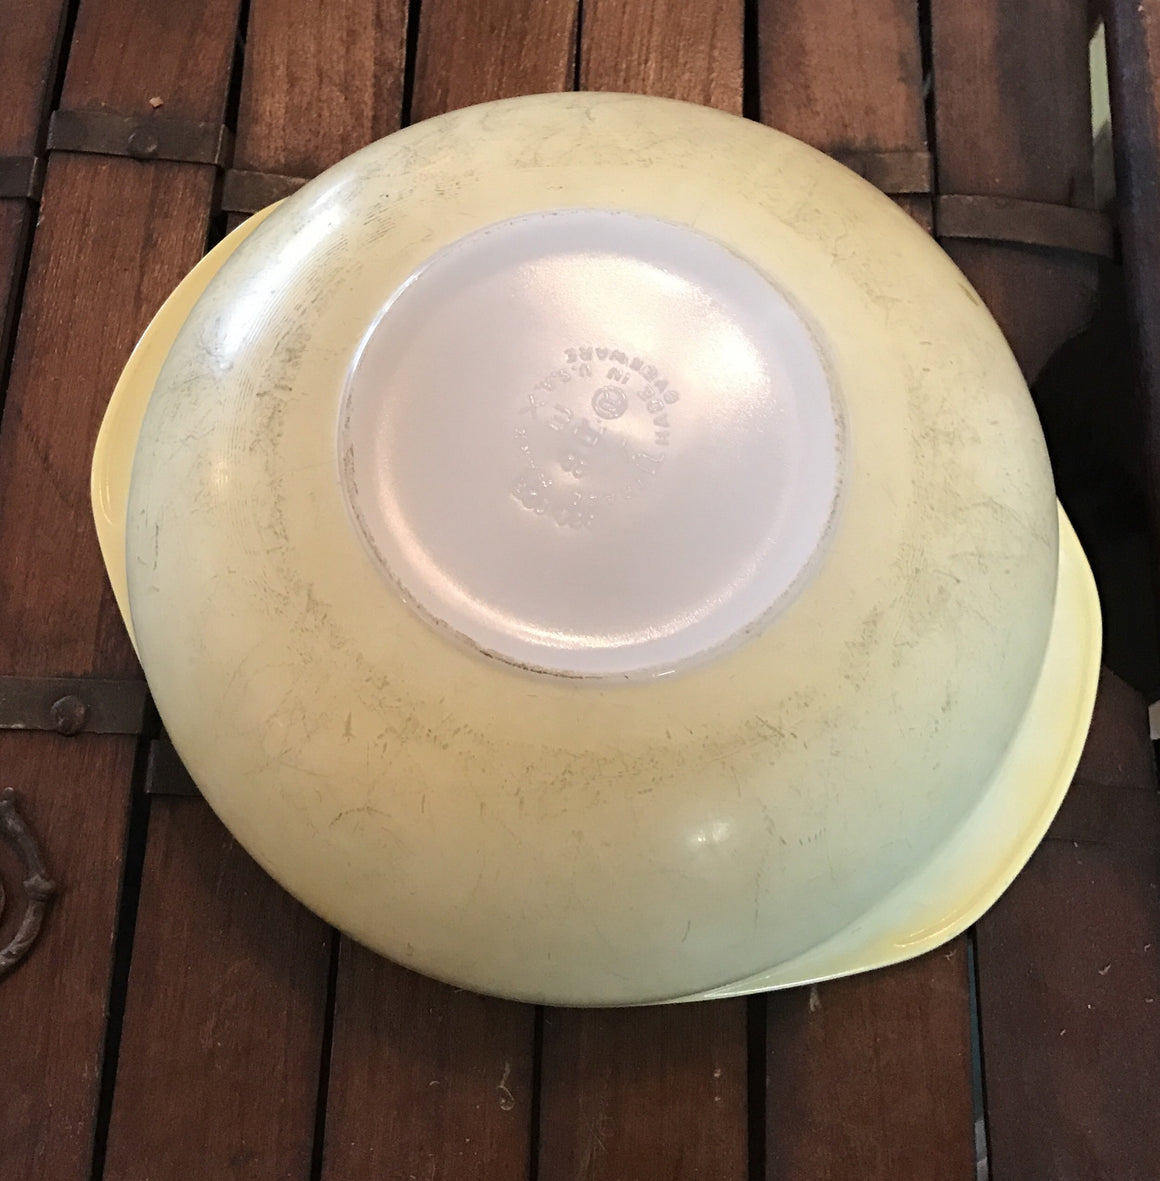 Vintage Pyrex 2 Quart Round Yellow Casserole #024 No Lid - VINTAGE JOURNEY MARKET - Upcycling & Restoration